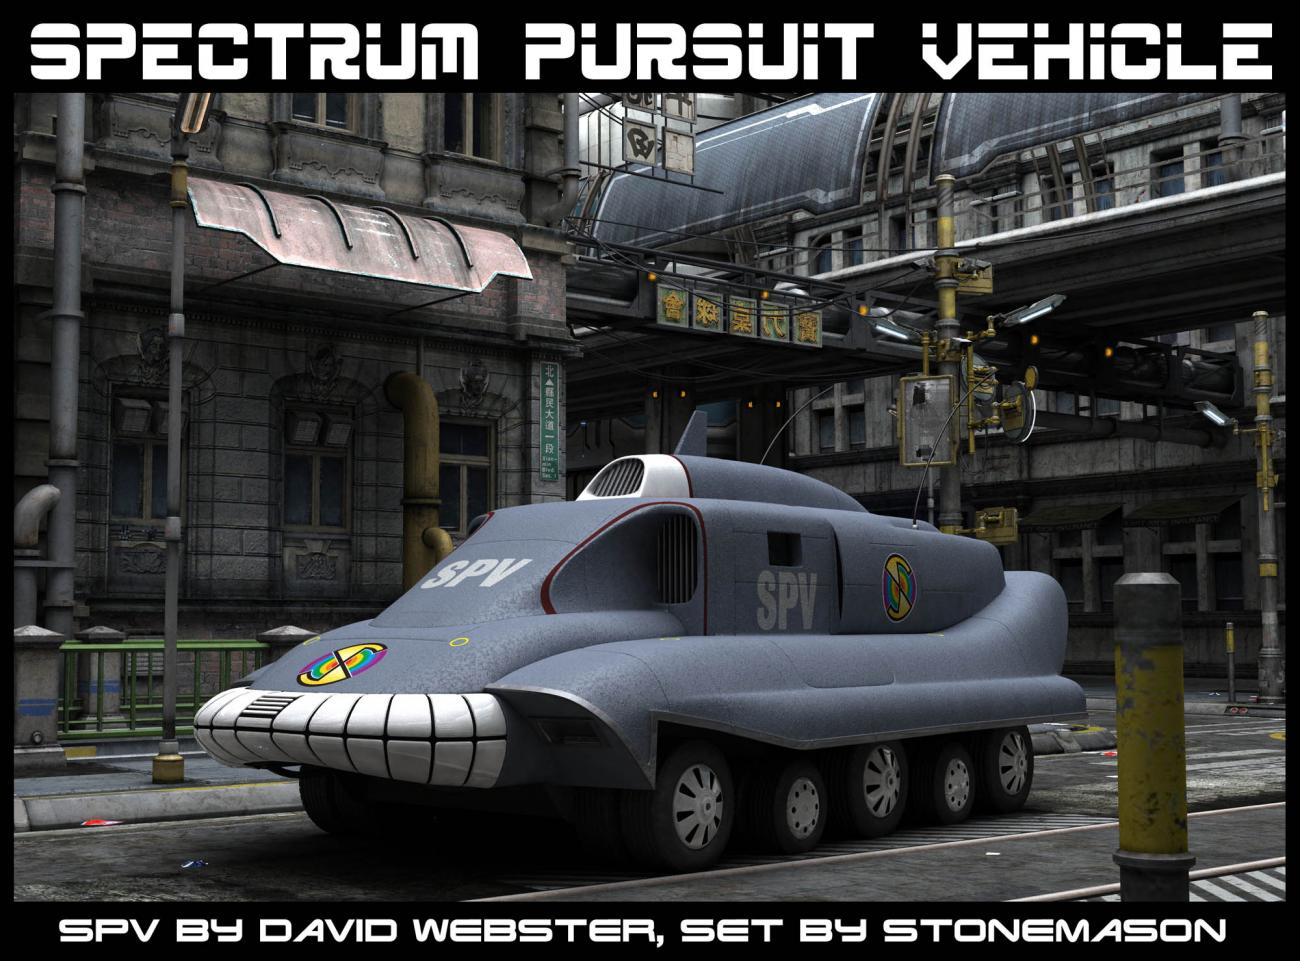 Spectrum Pursuit Vehicle from Captain Scarlet